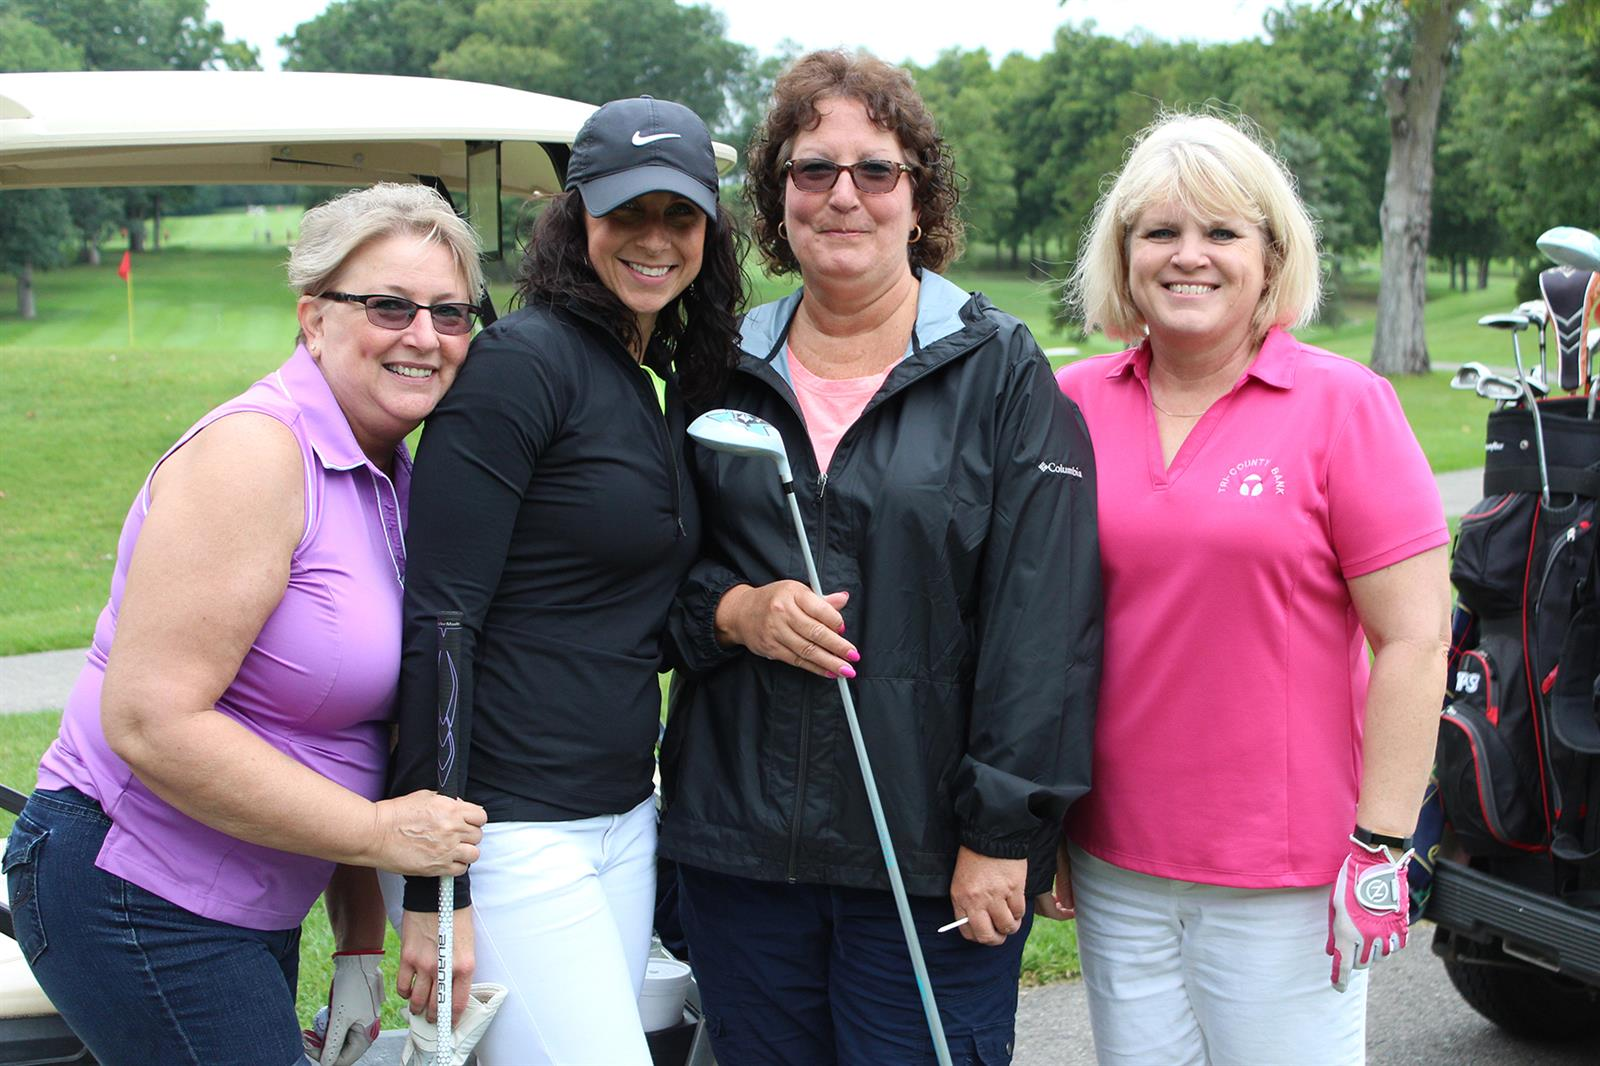 The winner of the women's division for the Marlette Regional Hospital Foundation's Driving for Health Golf Scramble was Tri-County Bank/Liebler Agency.